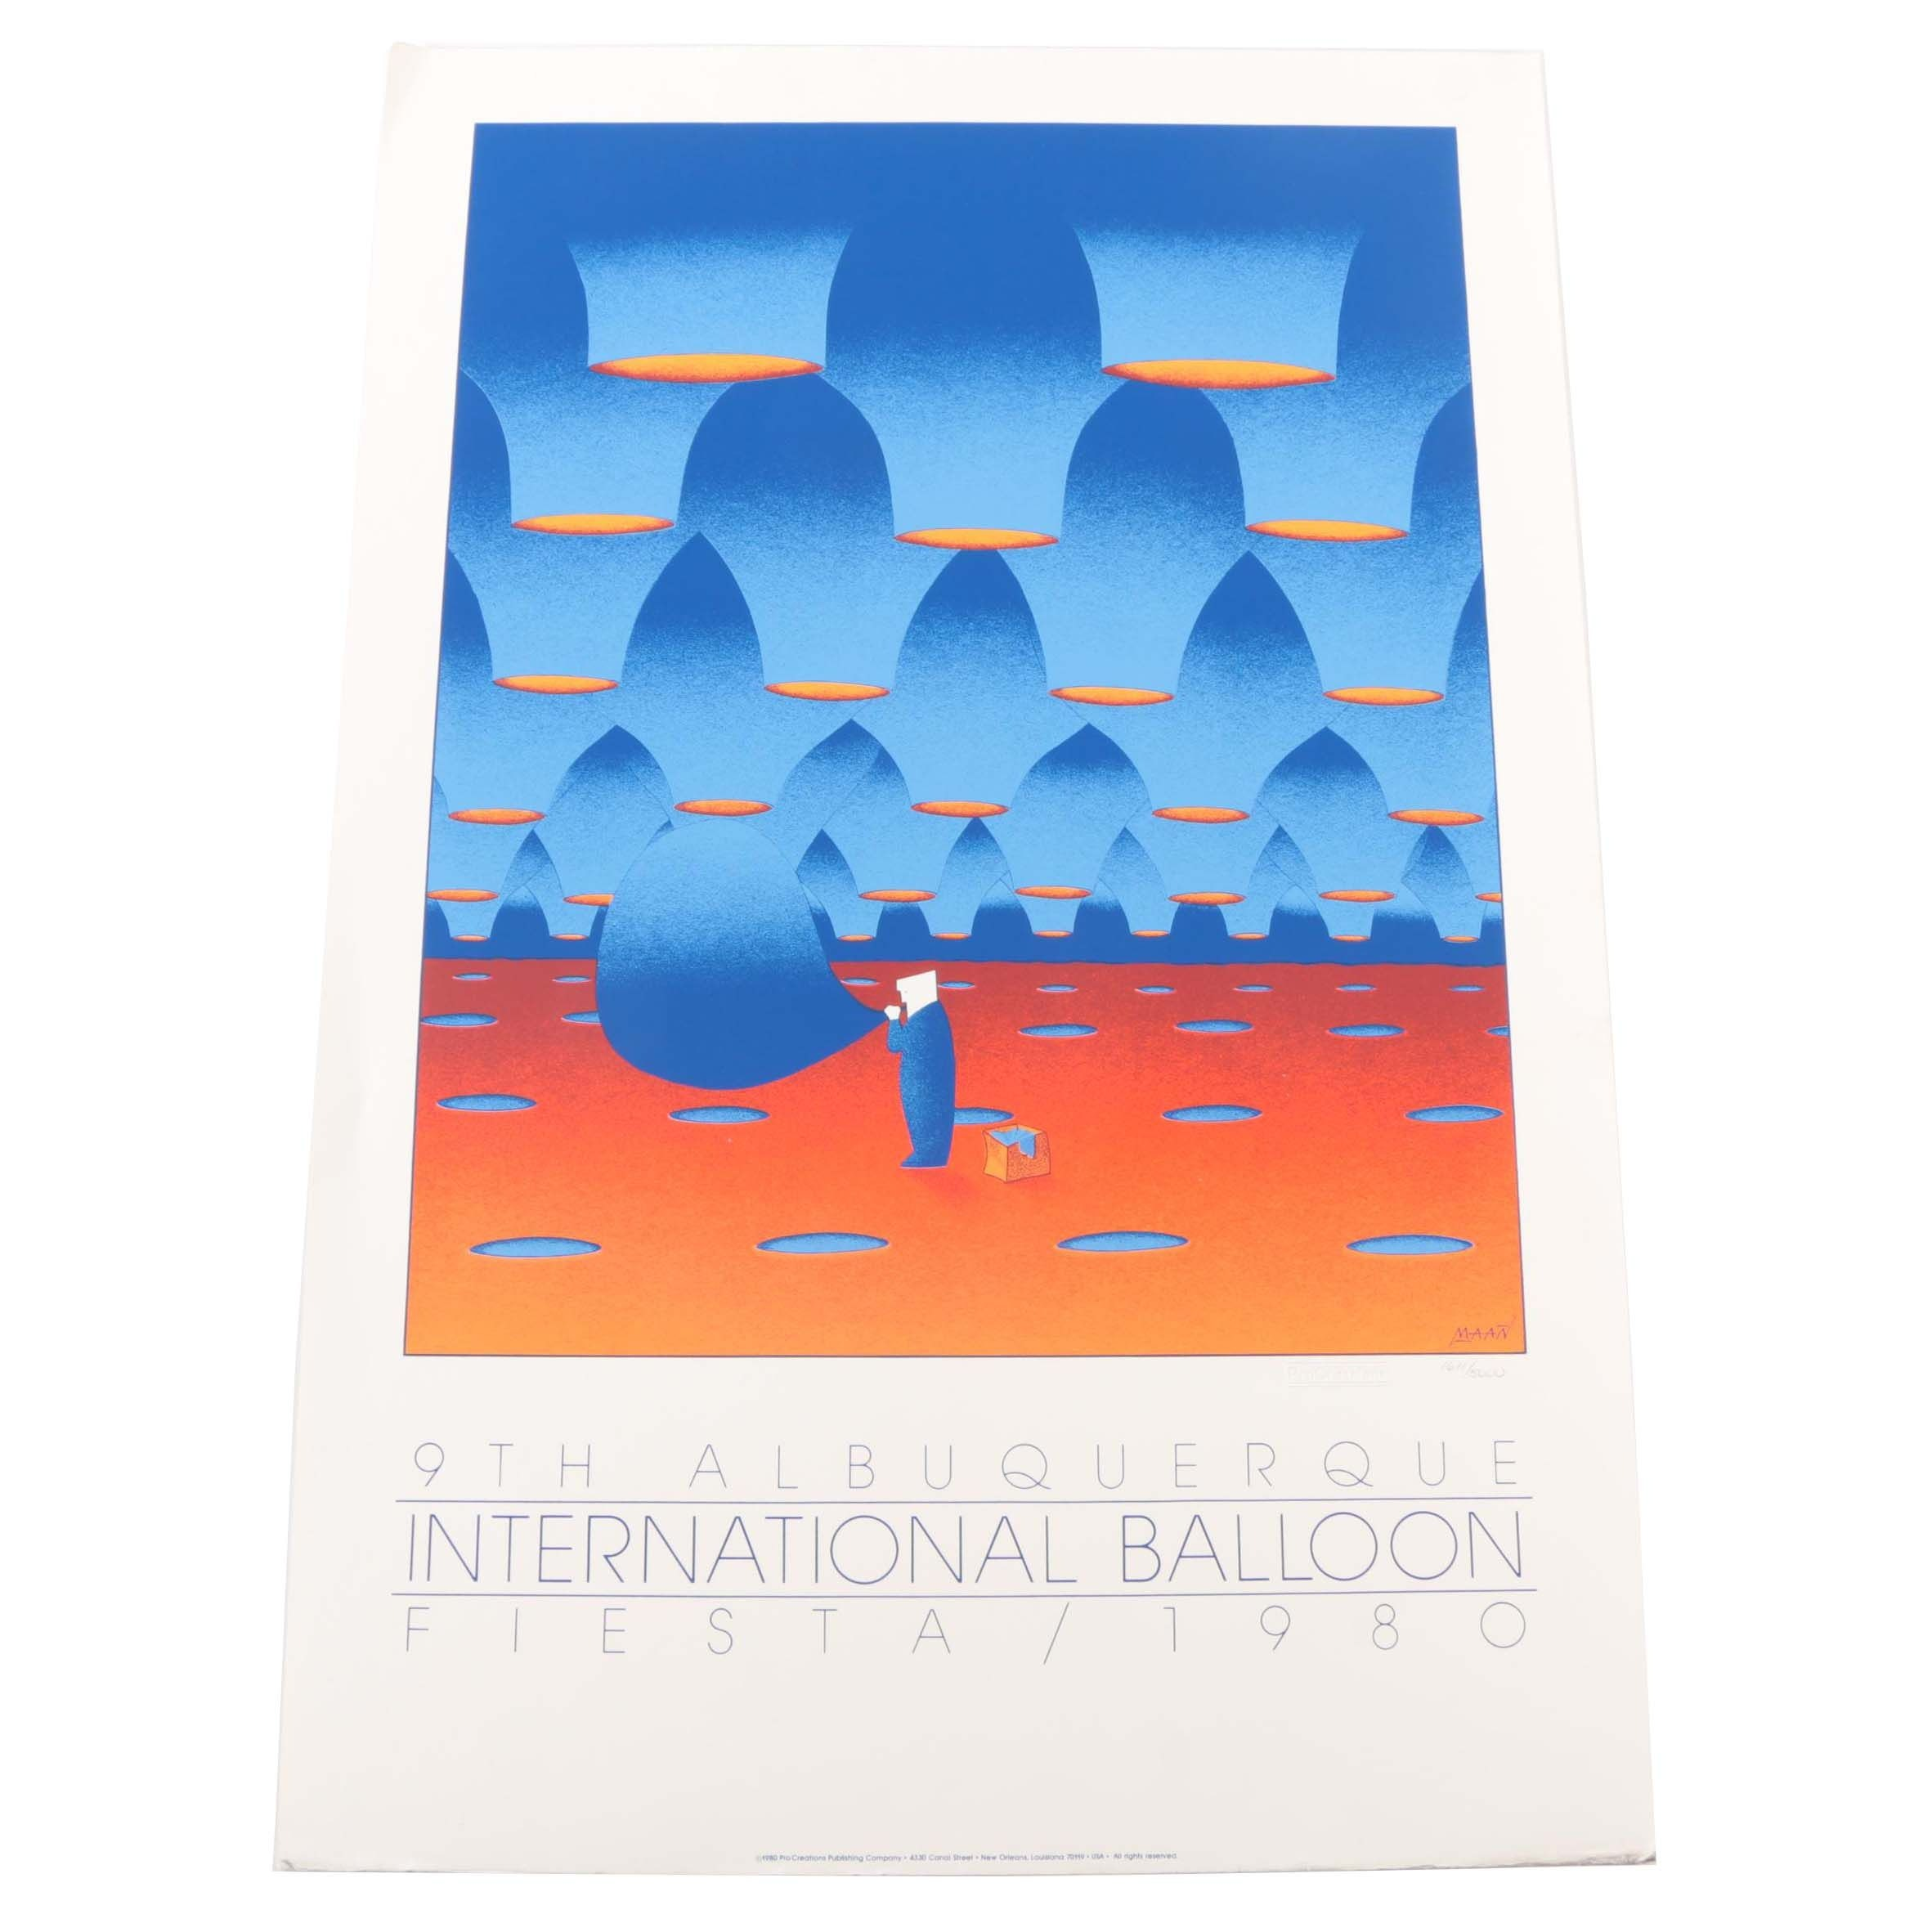 "MAAN Limited Edition 1980 Serigraph Poster ""9th Albuquerque International Balloon Fiesta"""